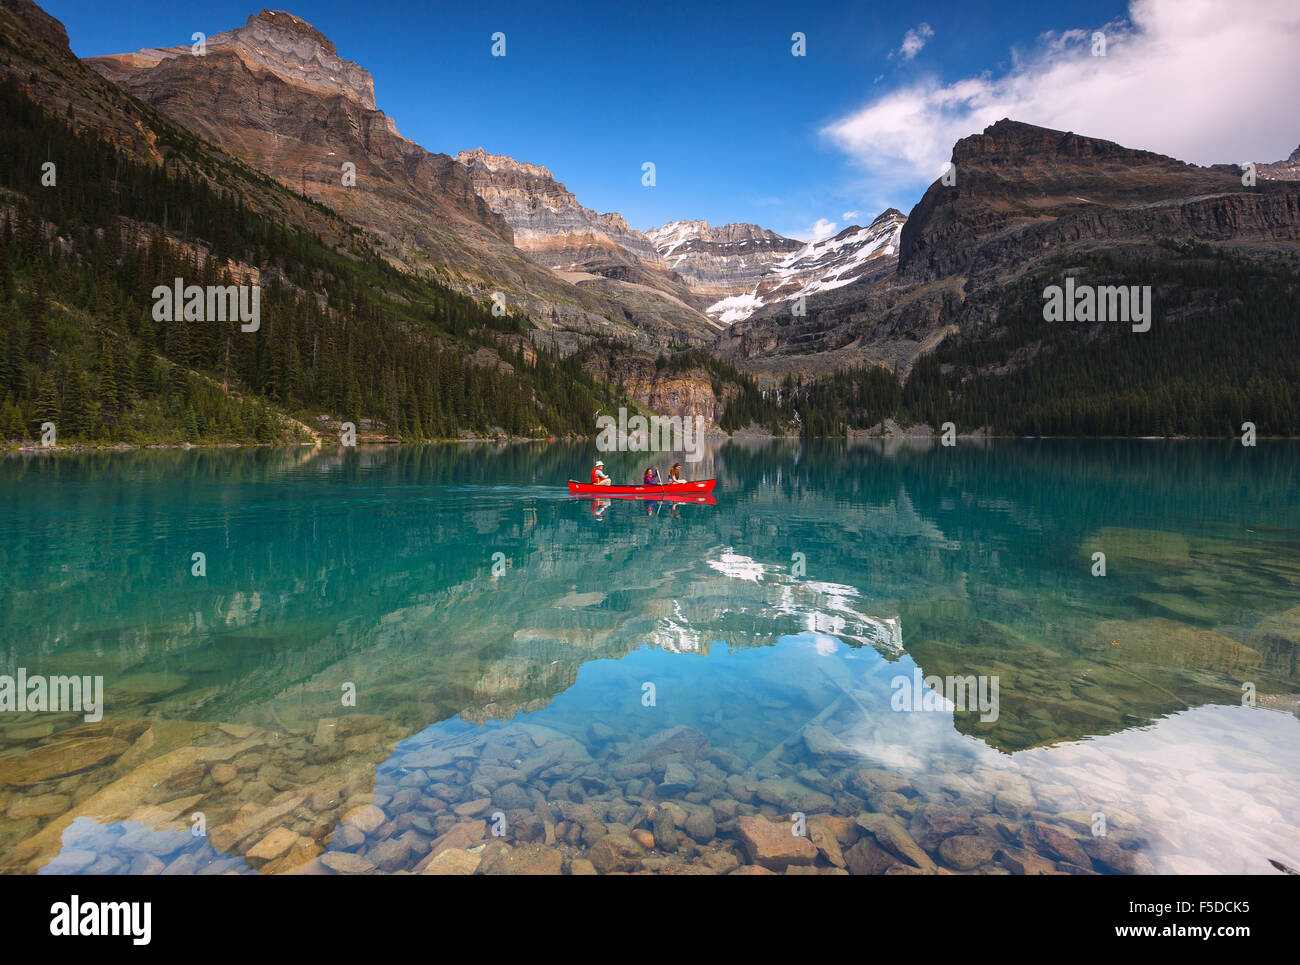 A couple canoeing at beautiful Lake O'Hara in Yoho National Park, British Columbia, Canada, America. - Stock Image